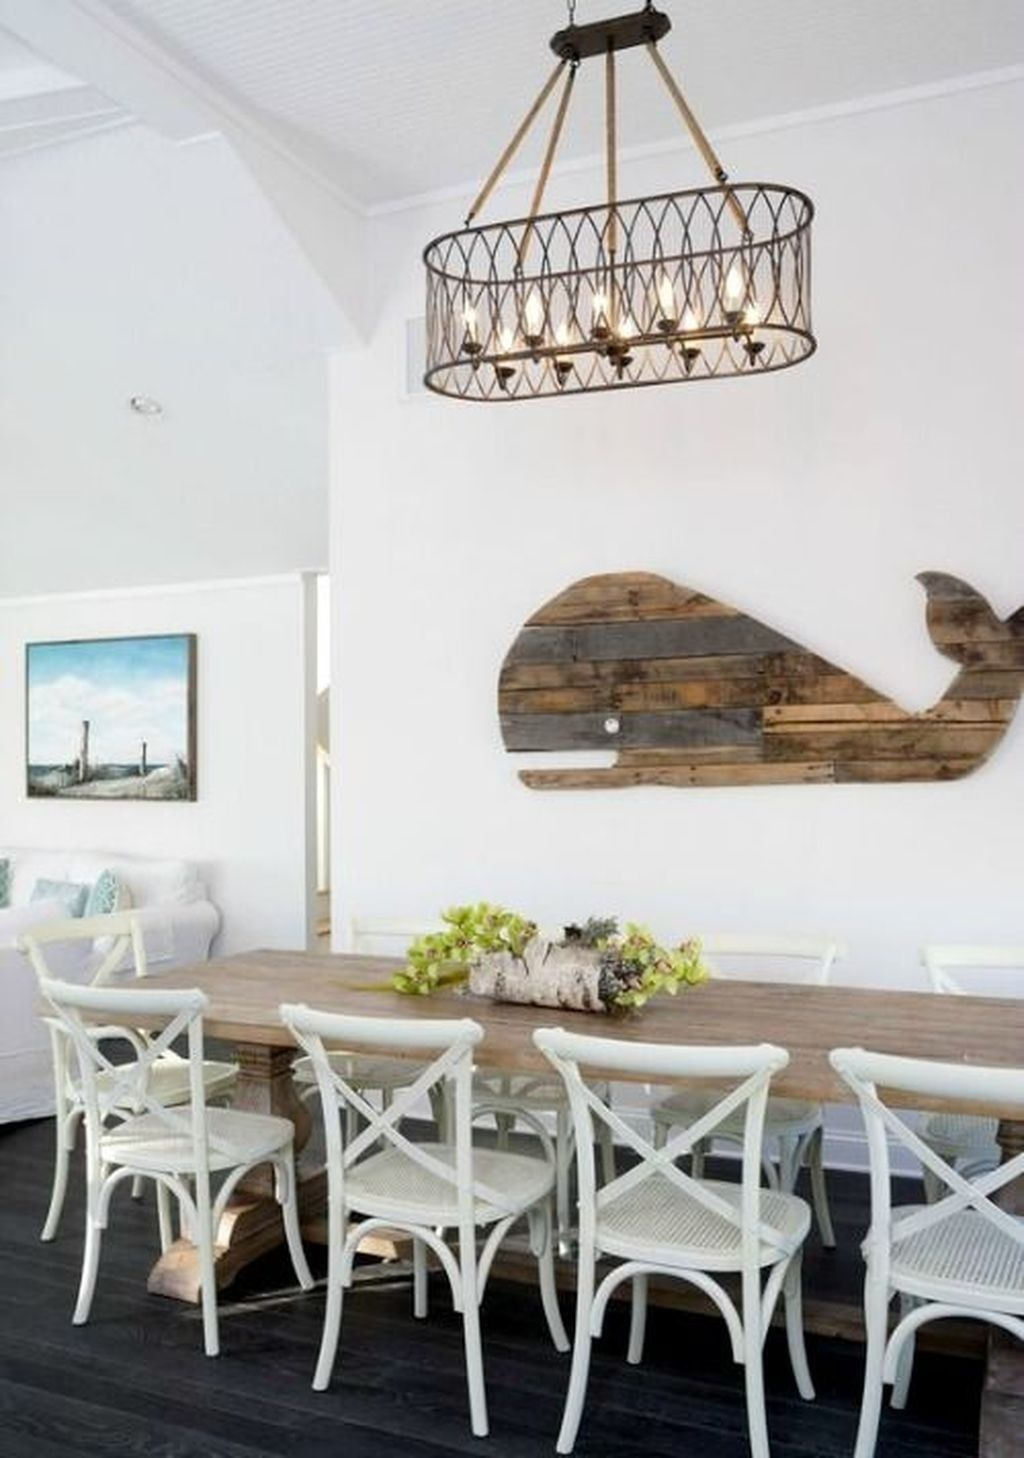 40 Marvelous Rustic Coastal Decor Inspirations With Images